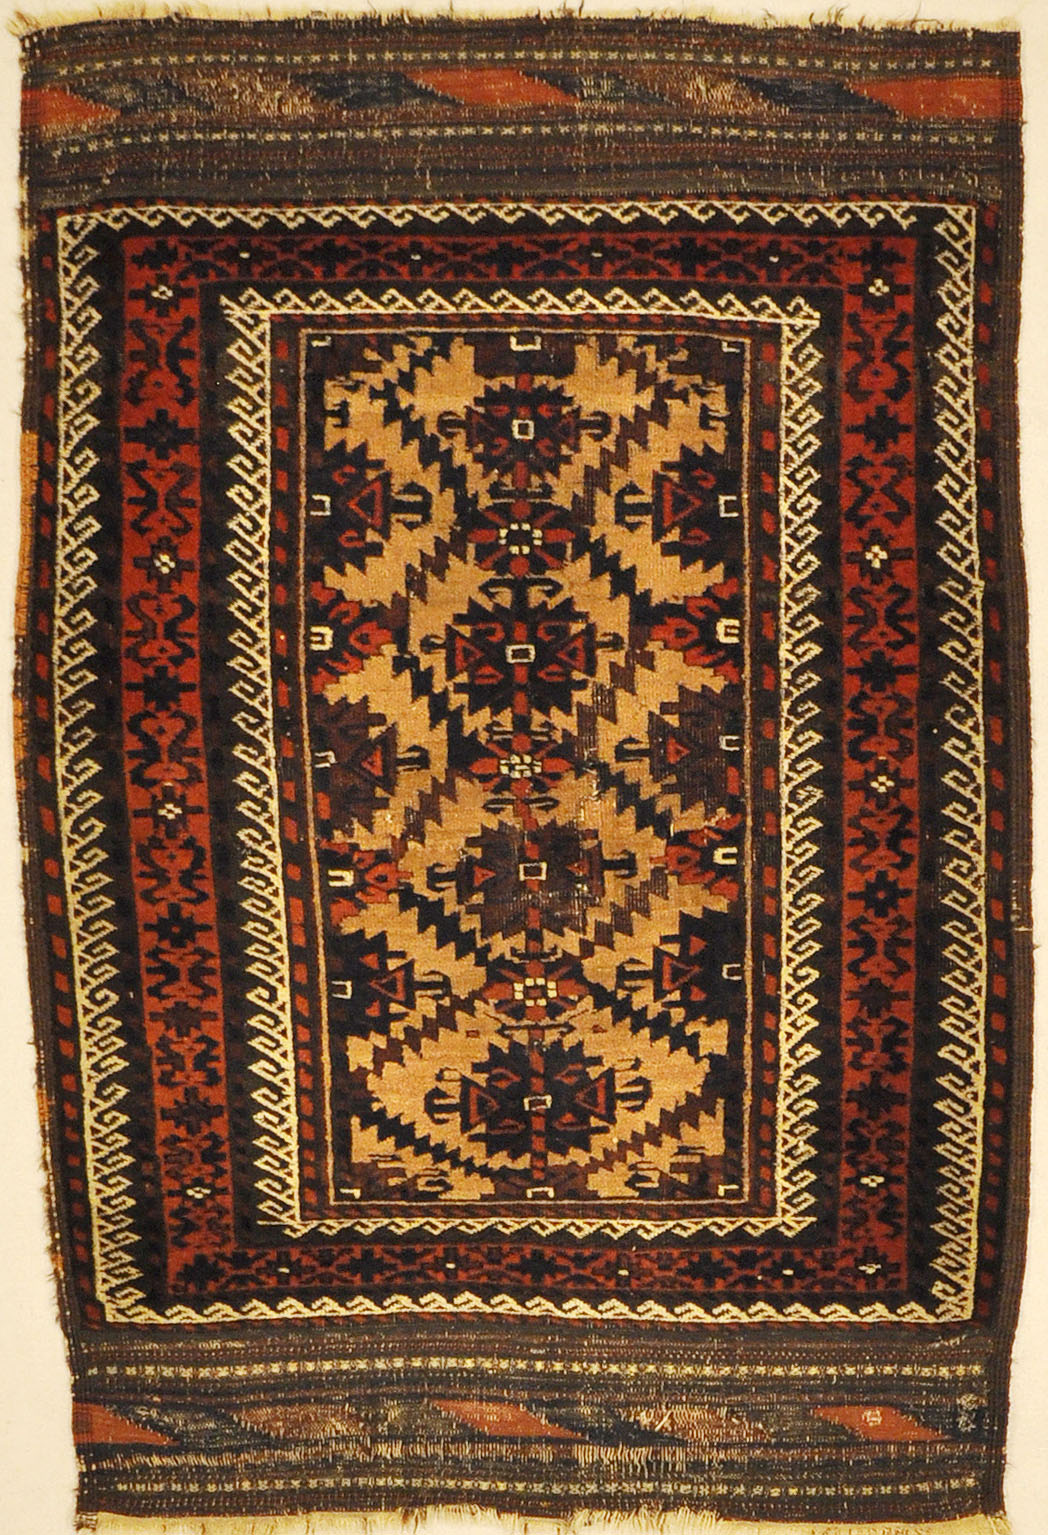 Antique Camelhair Persian Beluch Circa 1900s. A piece of genuine and authentic woven carpet art from Santa Barbara Design Center Rugs and More.